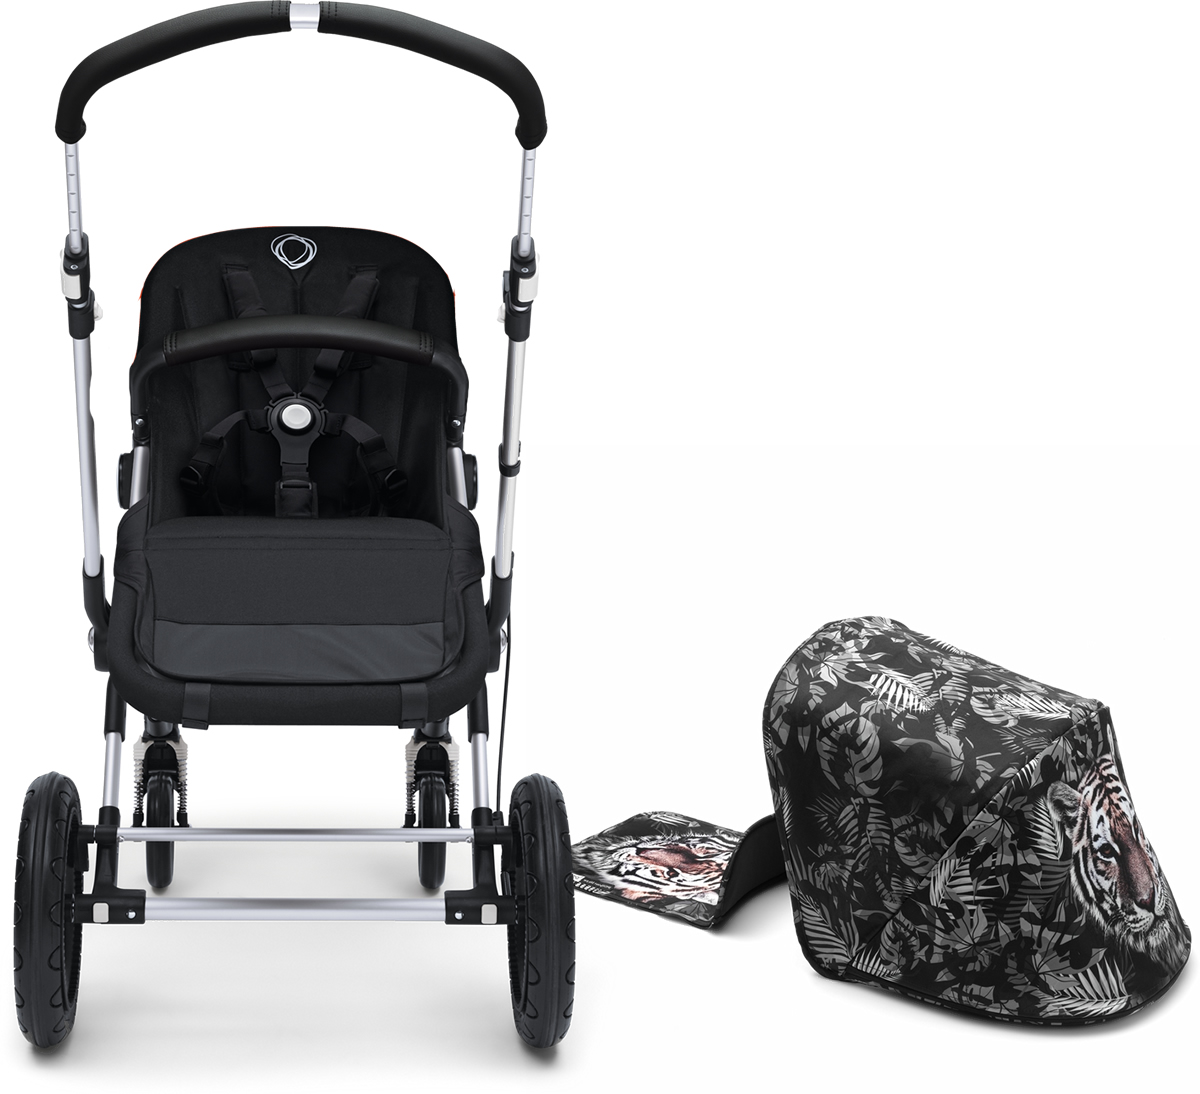 Bugaboo Cameleon 3 Stroller - Aluminum/We Are Handsome